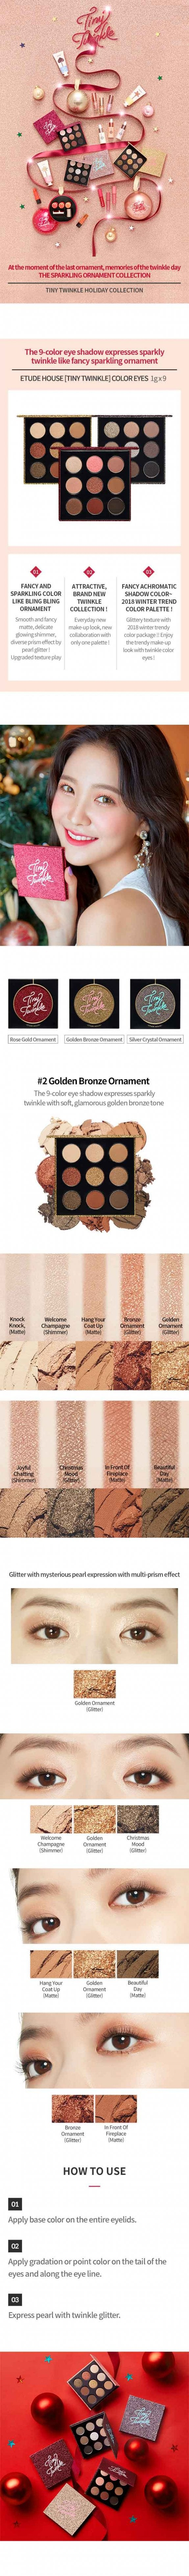 ETUDE HOUSE TINY TWINKLE COLOUR EYES #GOLDEN BRONZE ORNAMENT